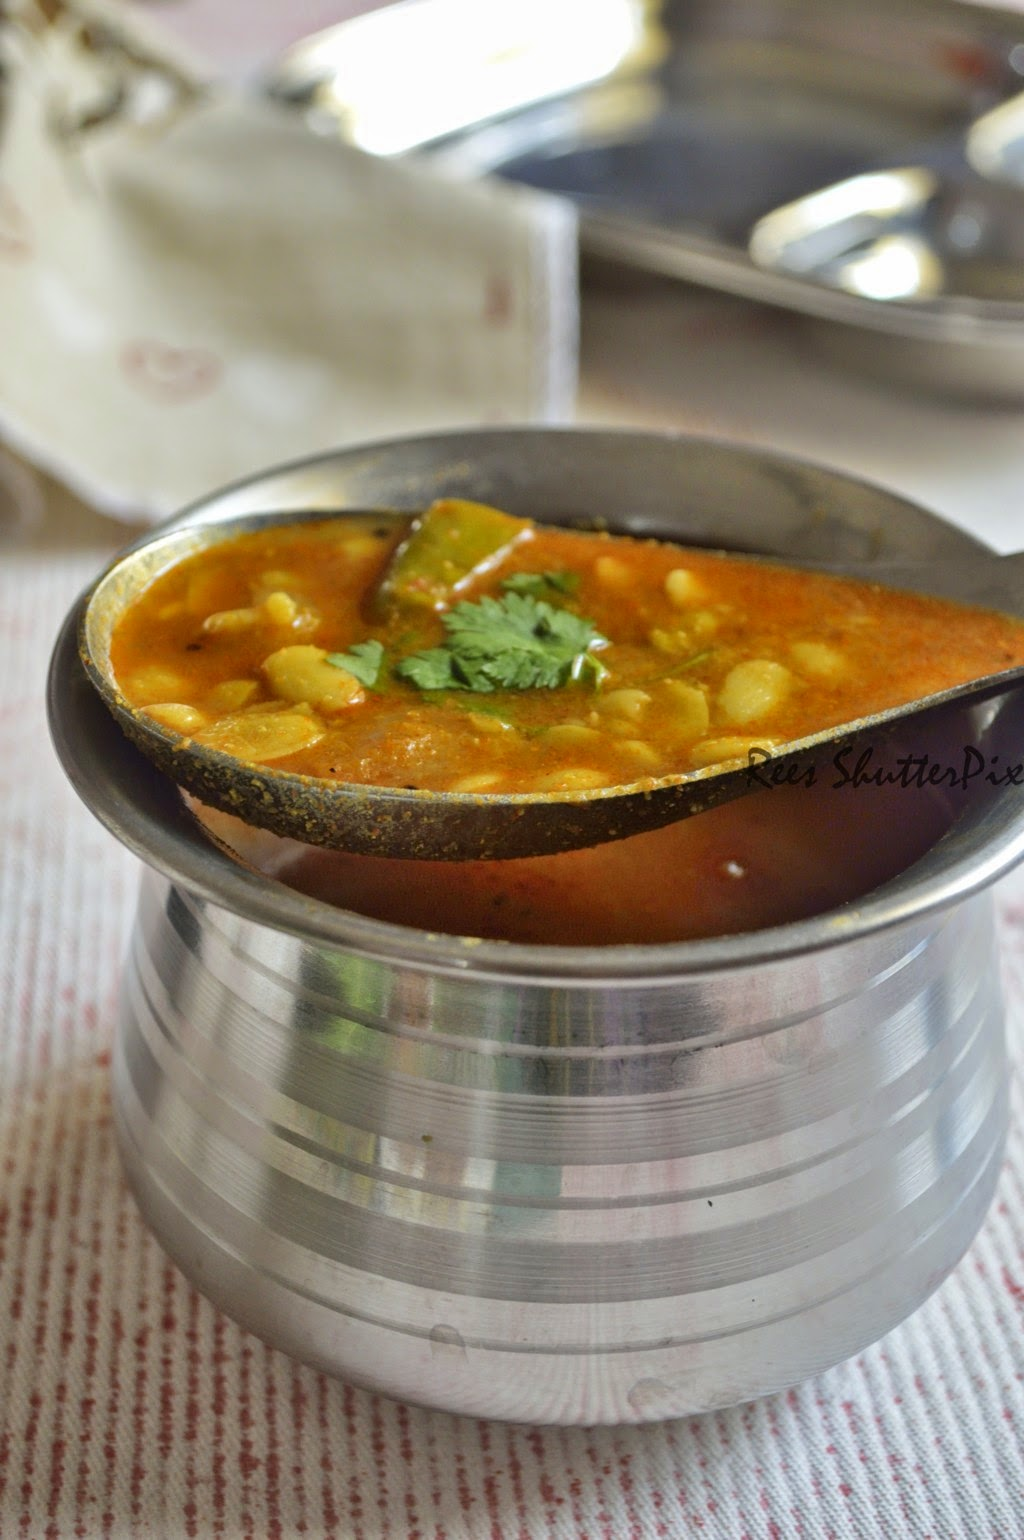 mocha kottai sambar recipe, pidukku paruppu sambar recipe, hitikida avarekalu recipe, mochai recipes, easy mocha recipes, mocha kottai recipes